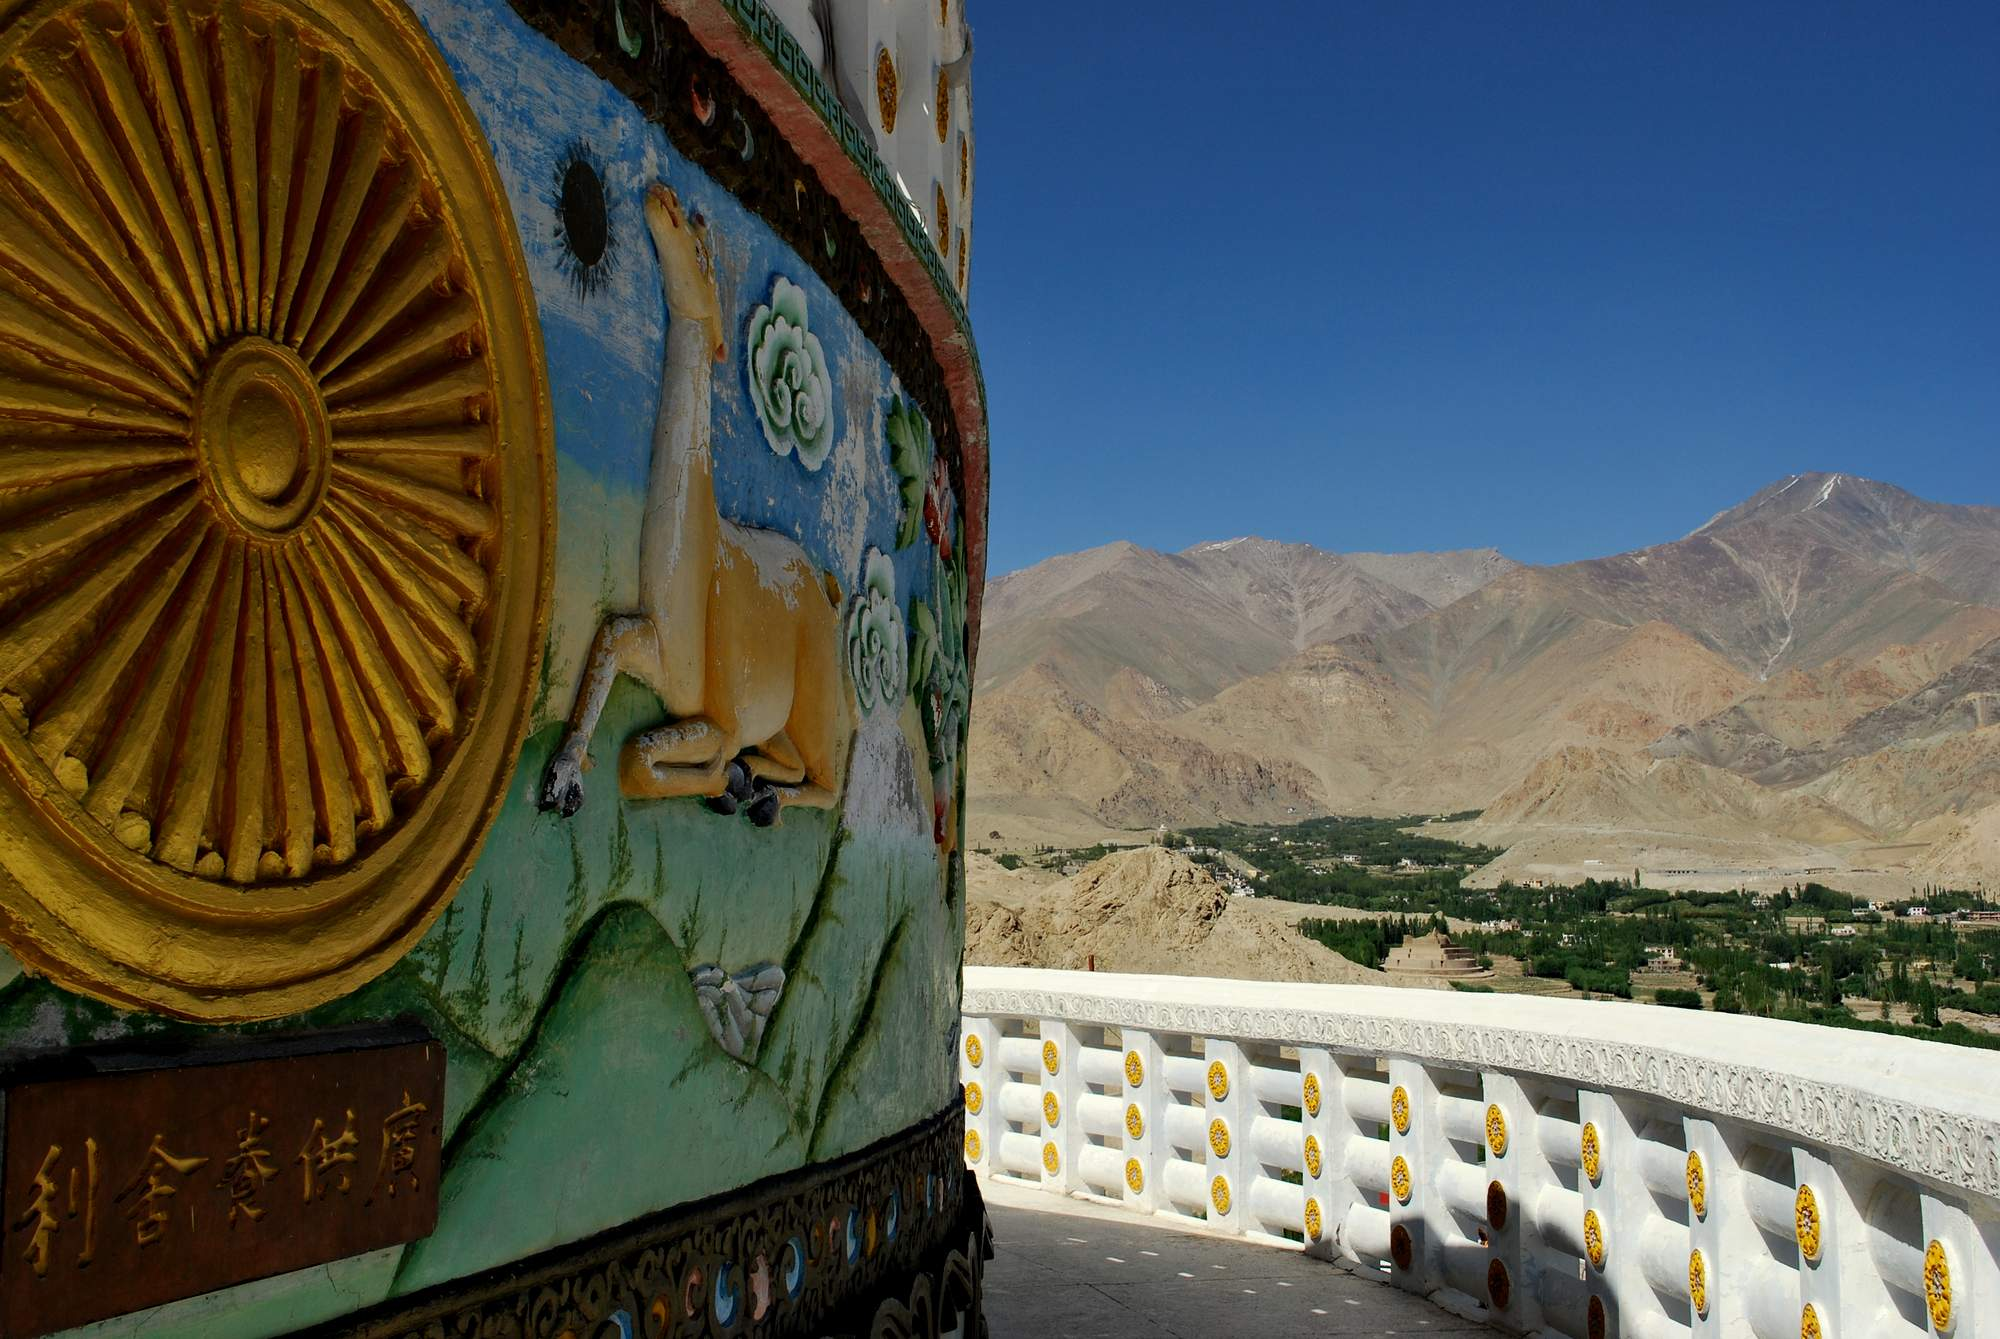 Upshi to Leh cycling